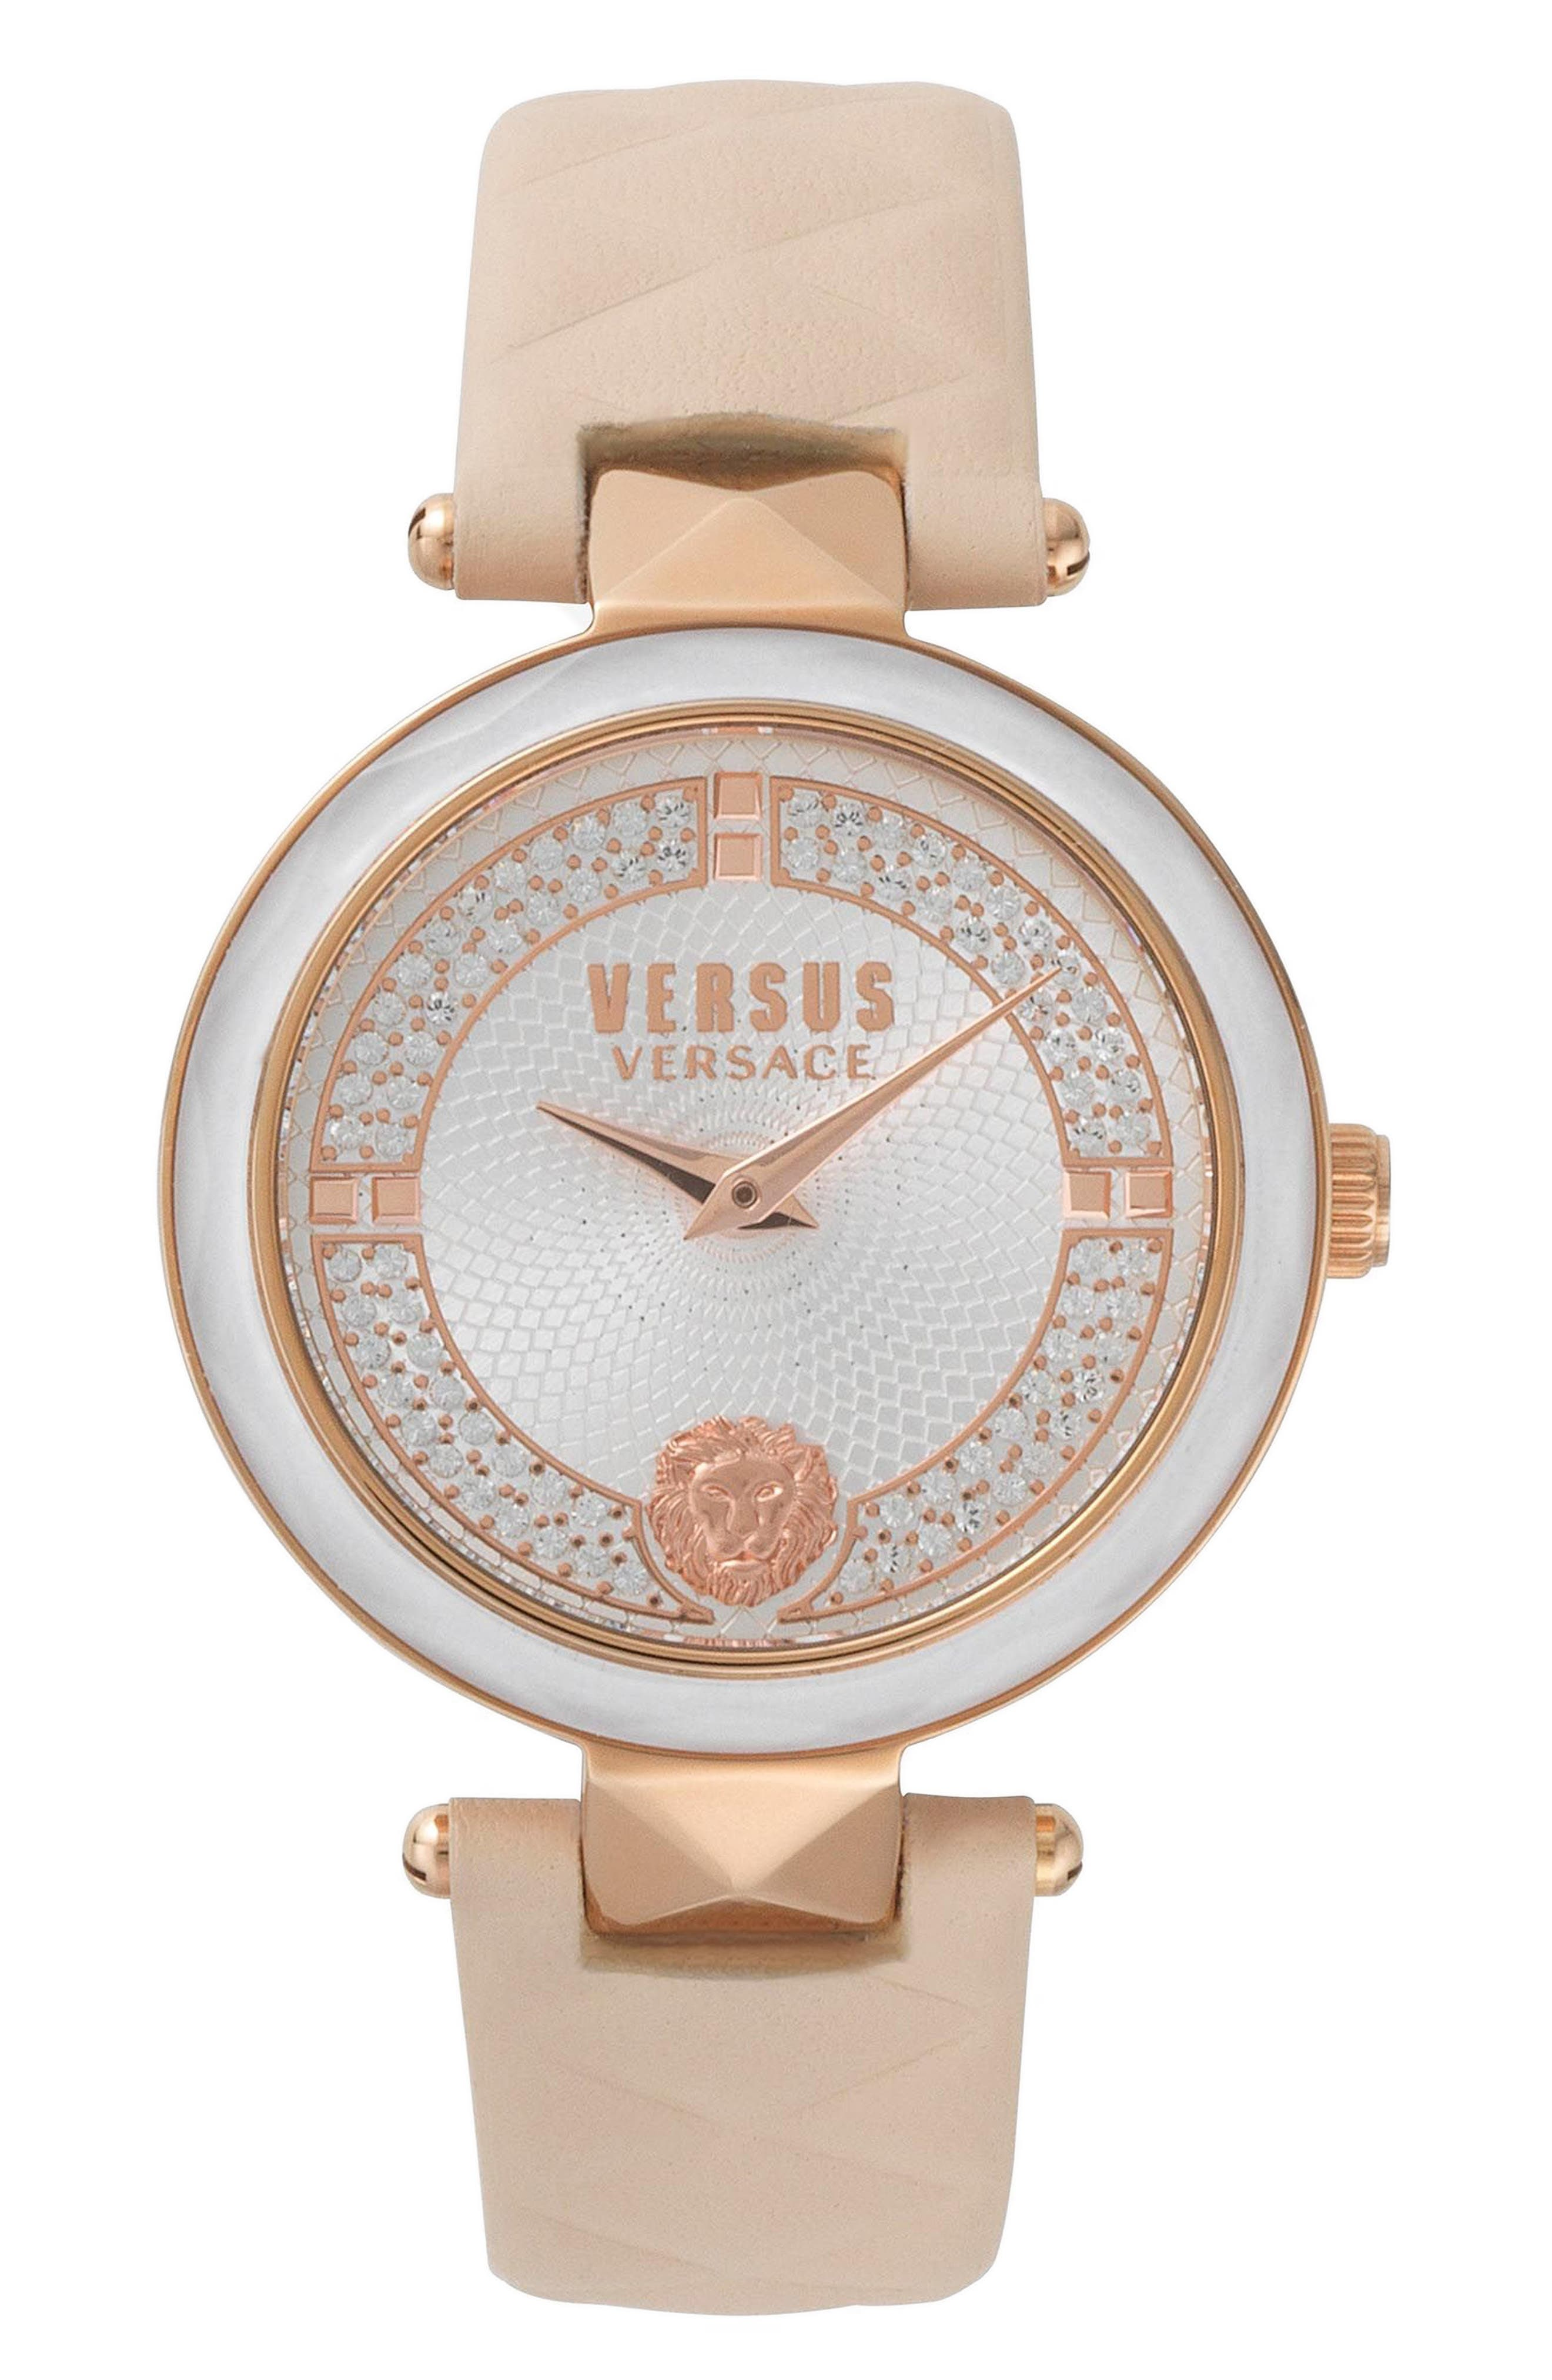 VERSUS by Versace Covent Garden Leather Strap Watch,                             Main thumbnail 1, color,                             Beige/ White/ Rose Gold